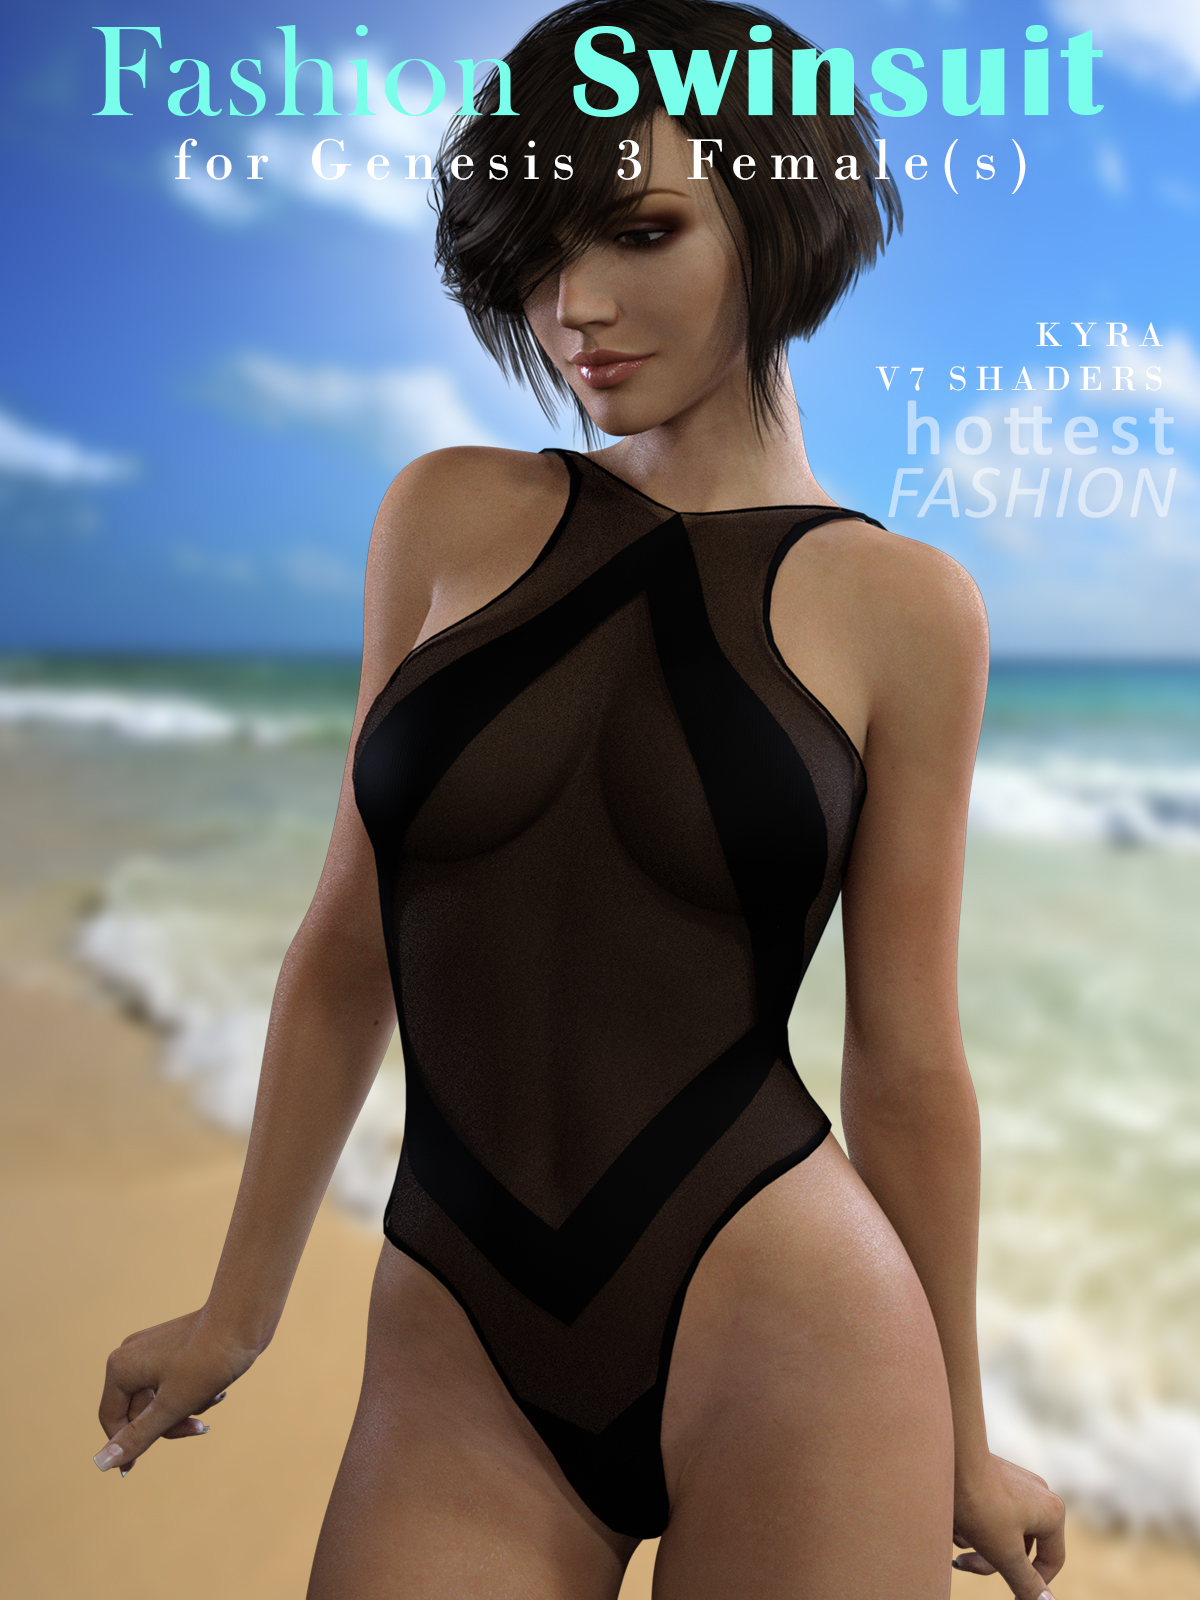 Fashion Swimsuit for Genesis 3 Female